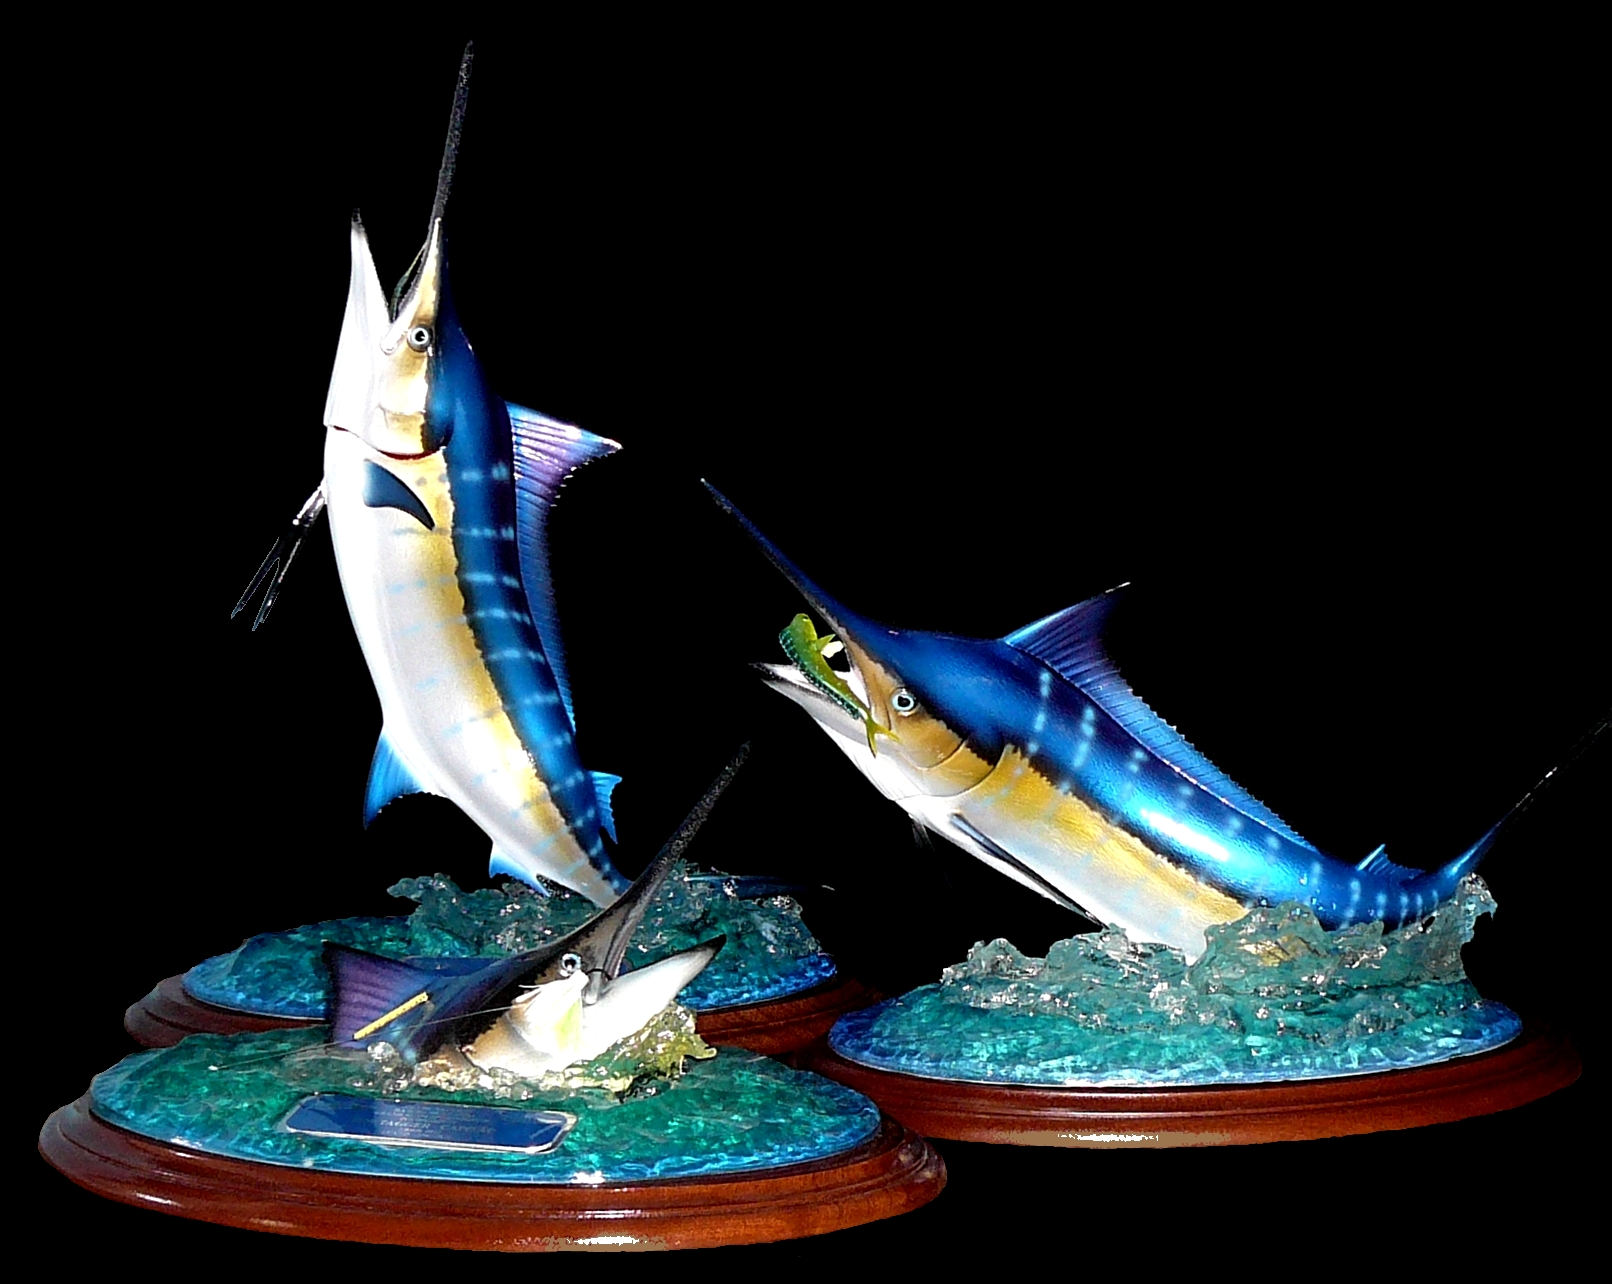 Blue_Marlin_Trophies_22.jpg